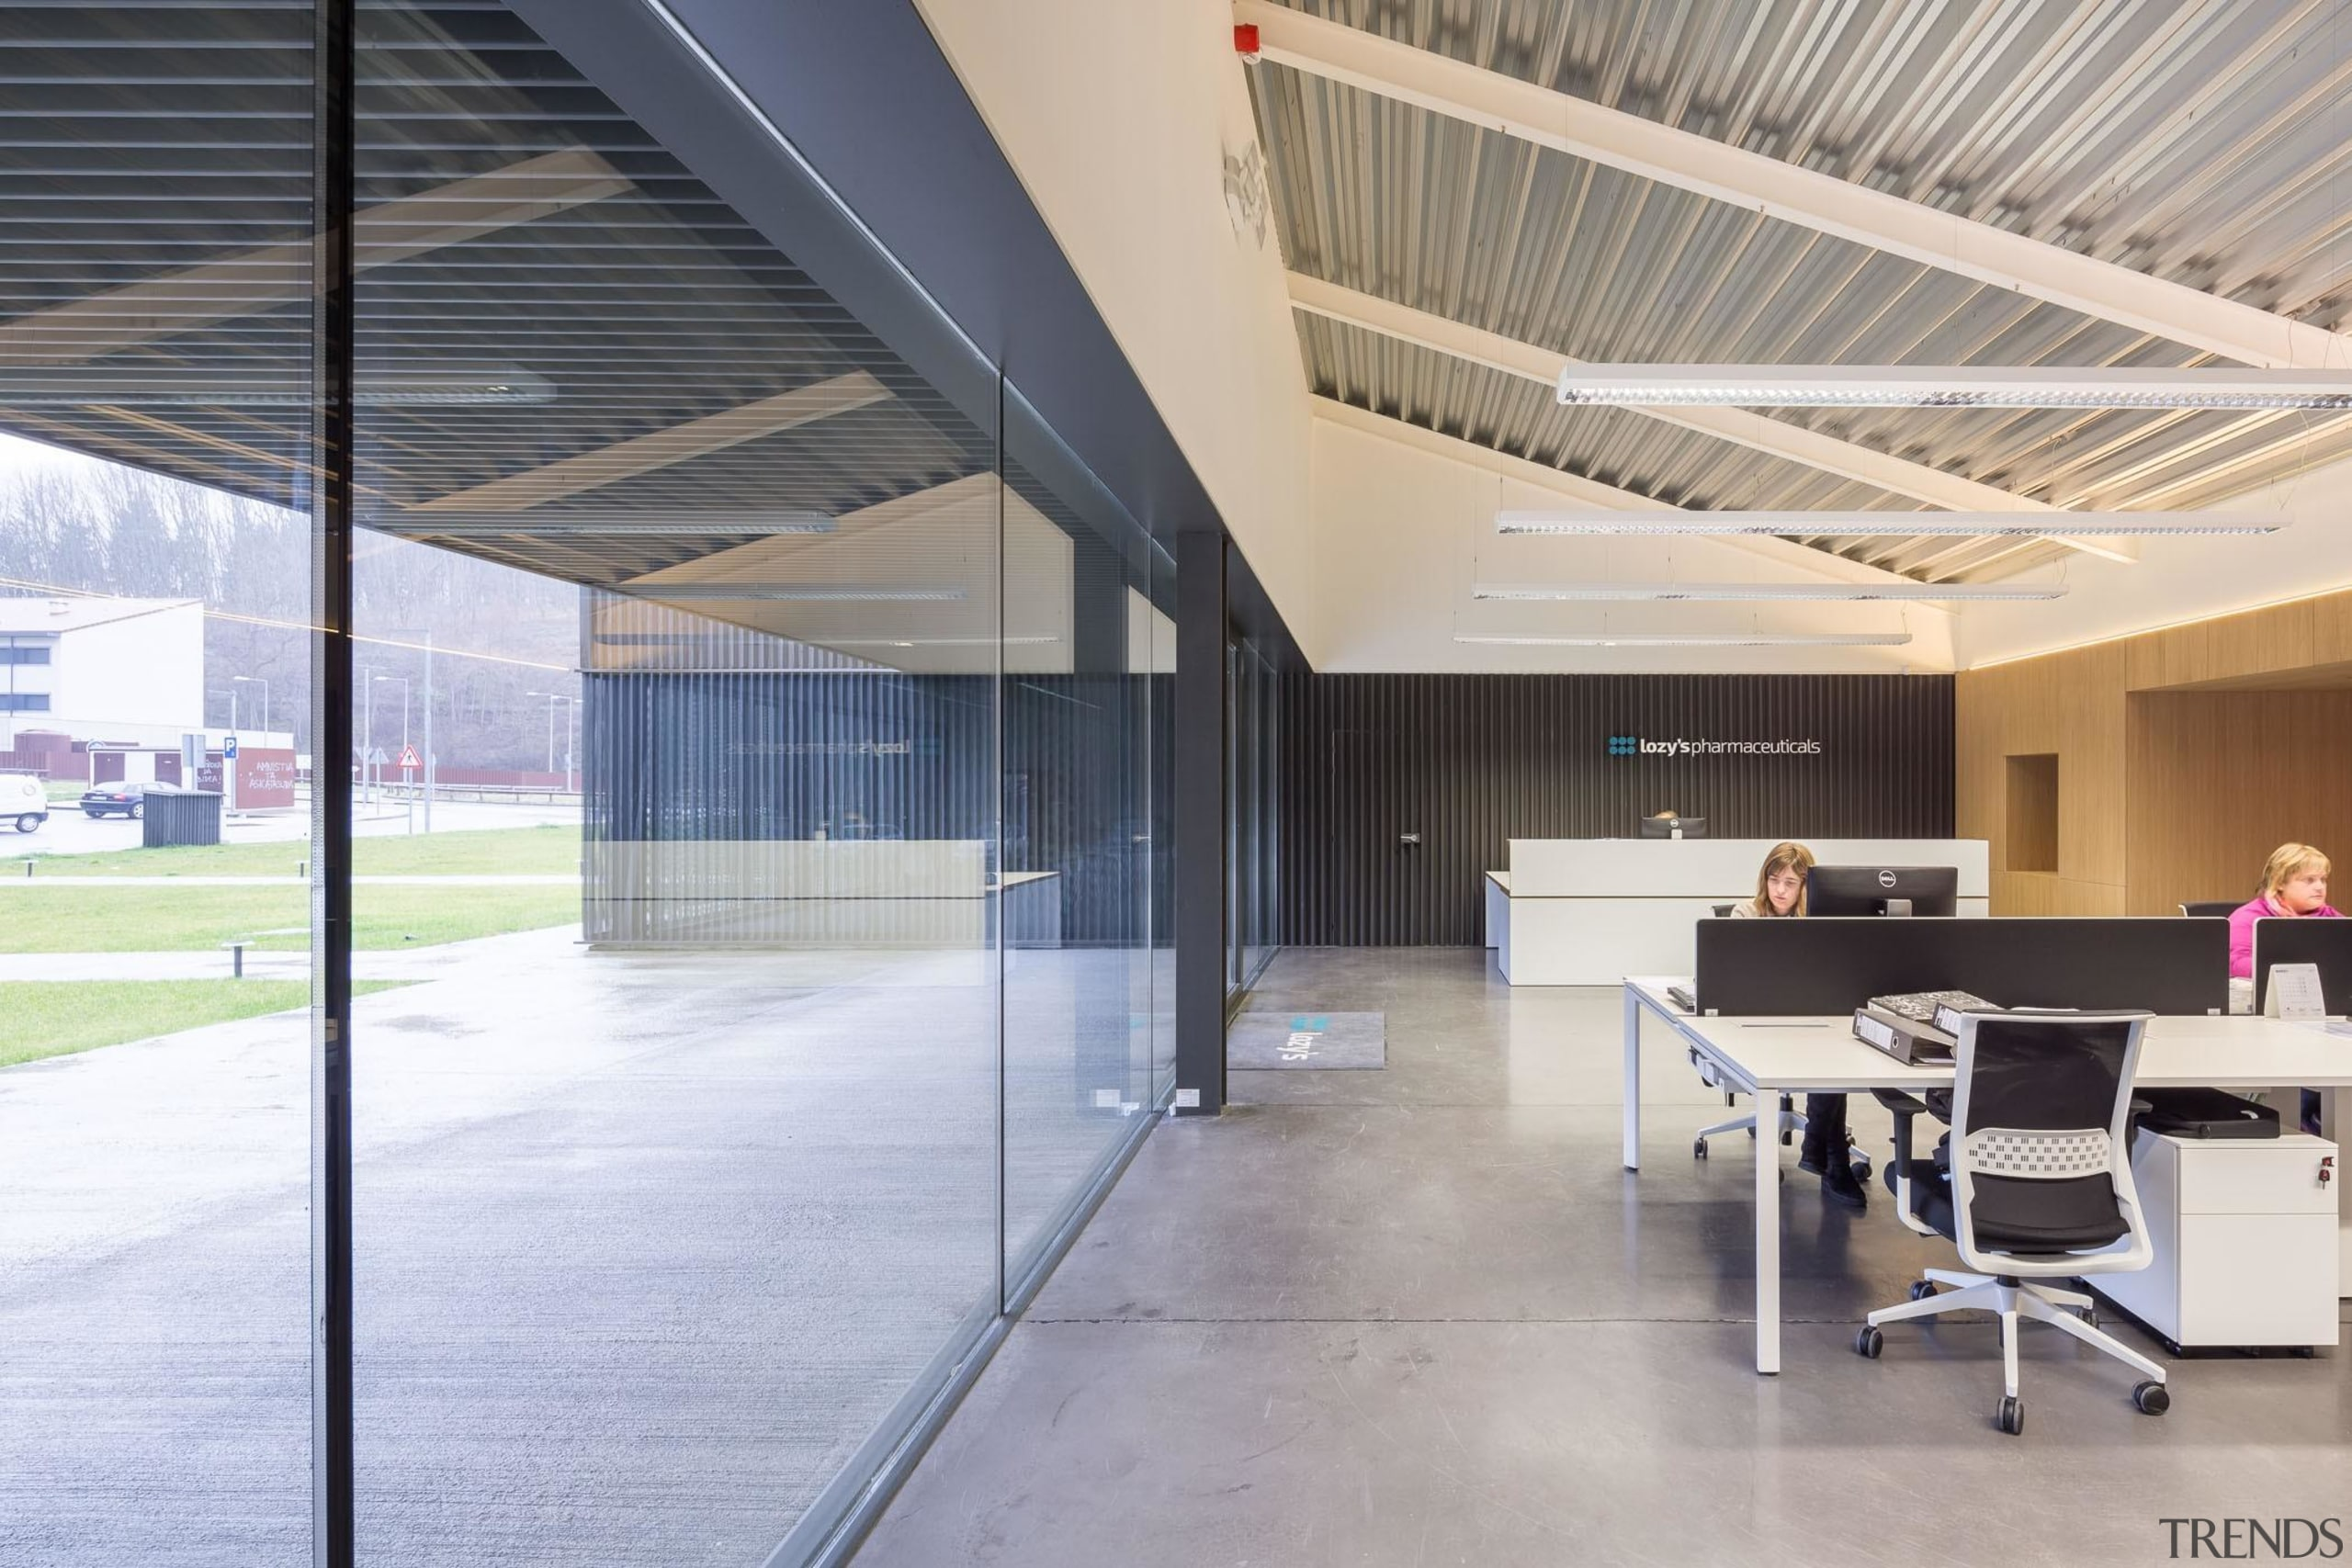 Only when standing inside do you get a architecture, ceiling, daylighting, floor, interior design, gray